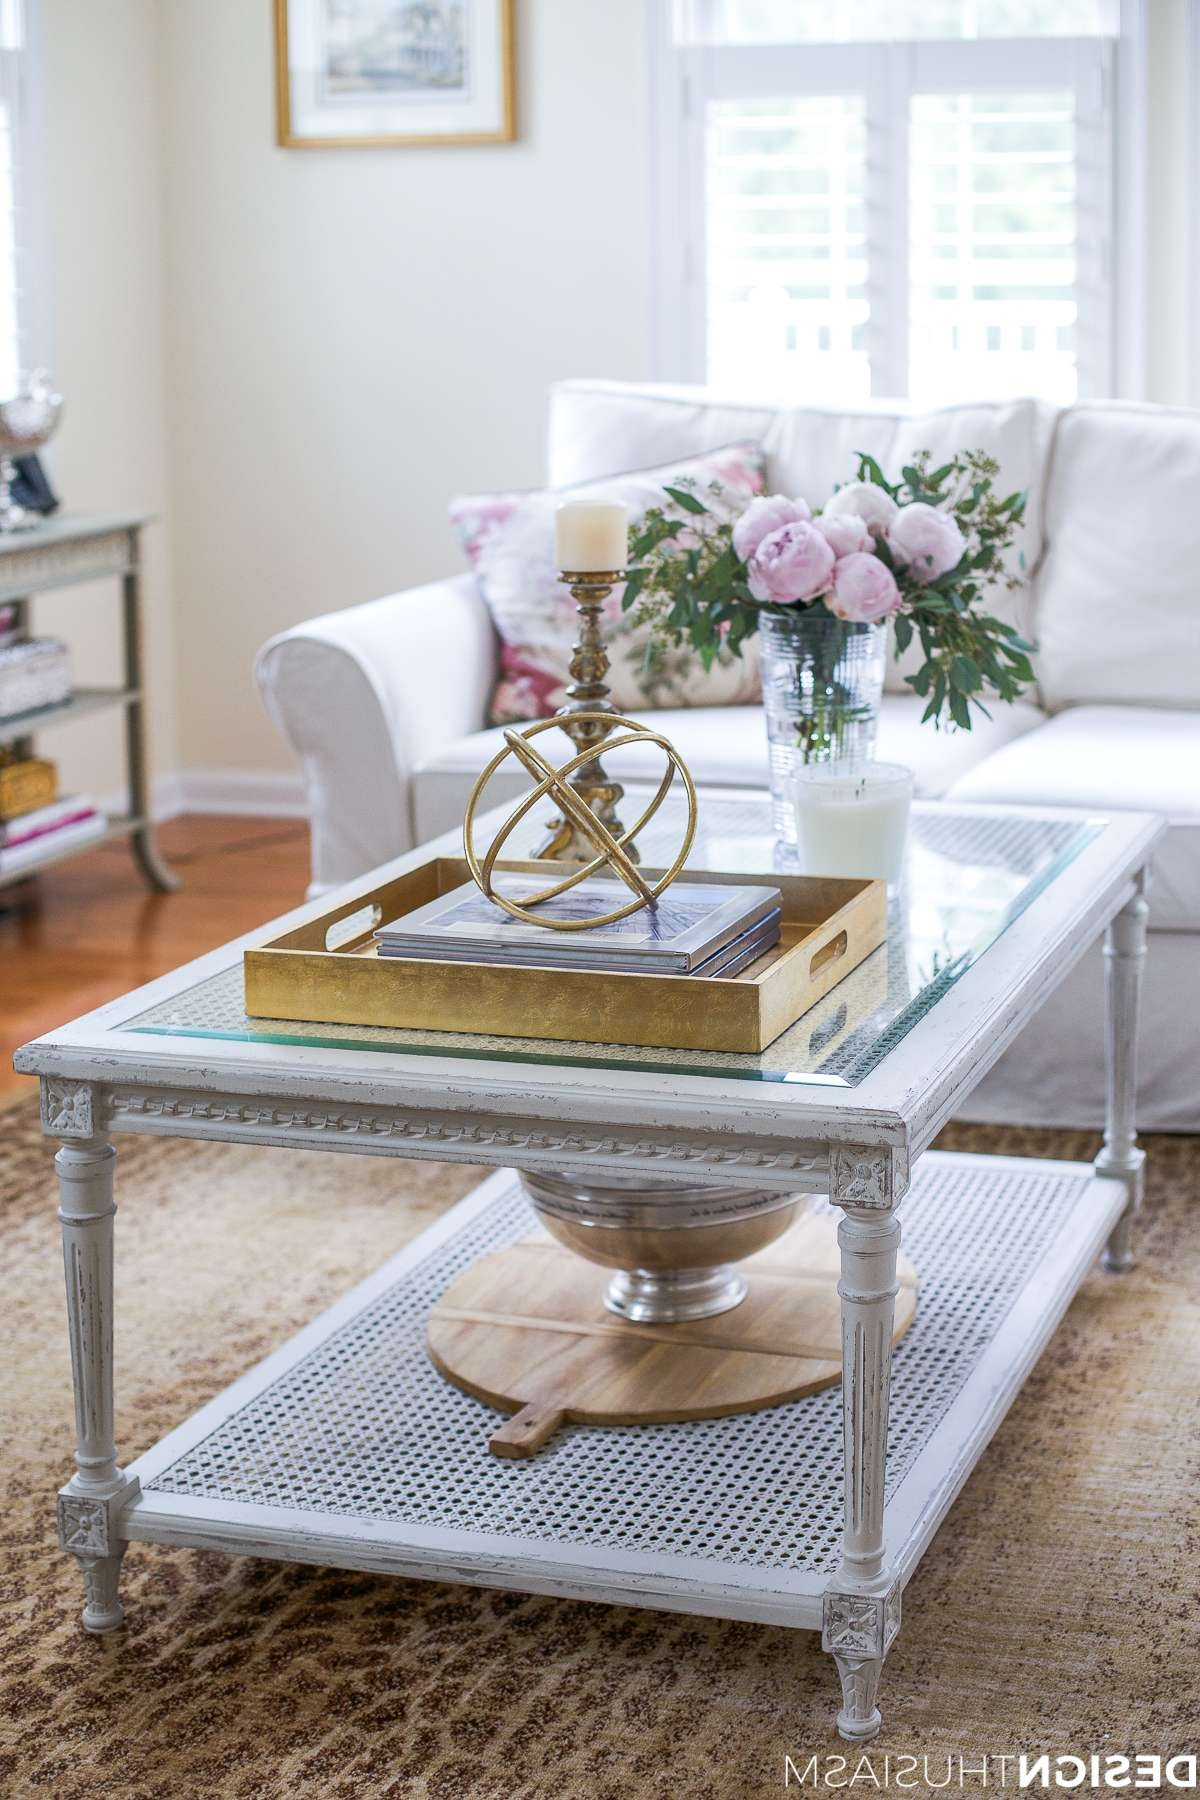 Updating The Family Room With A French Country Coffee Table For Favorite French Country Coffee Tables (View 14 of 20)